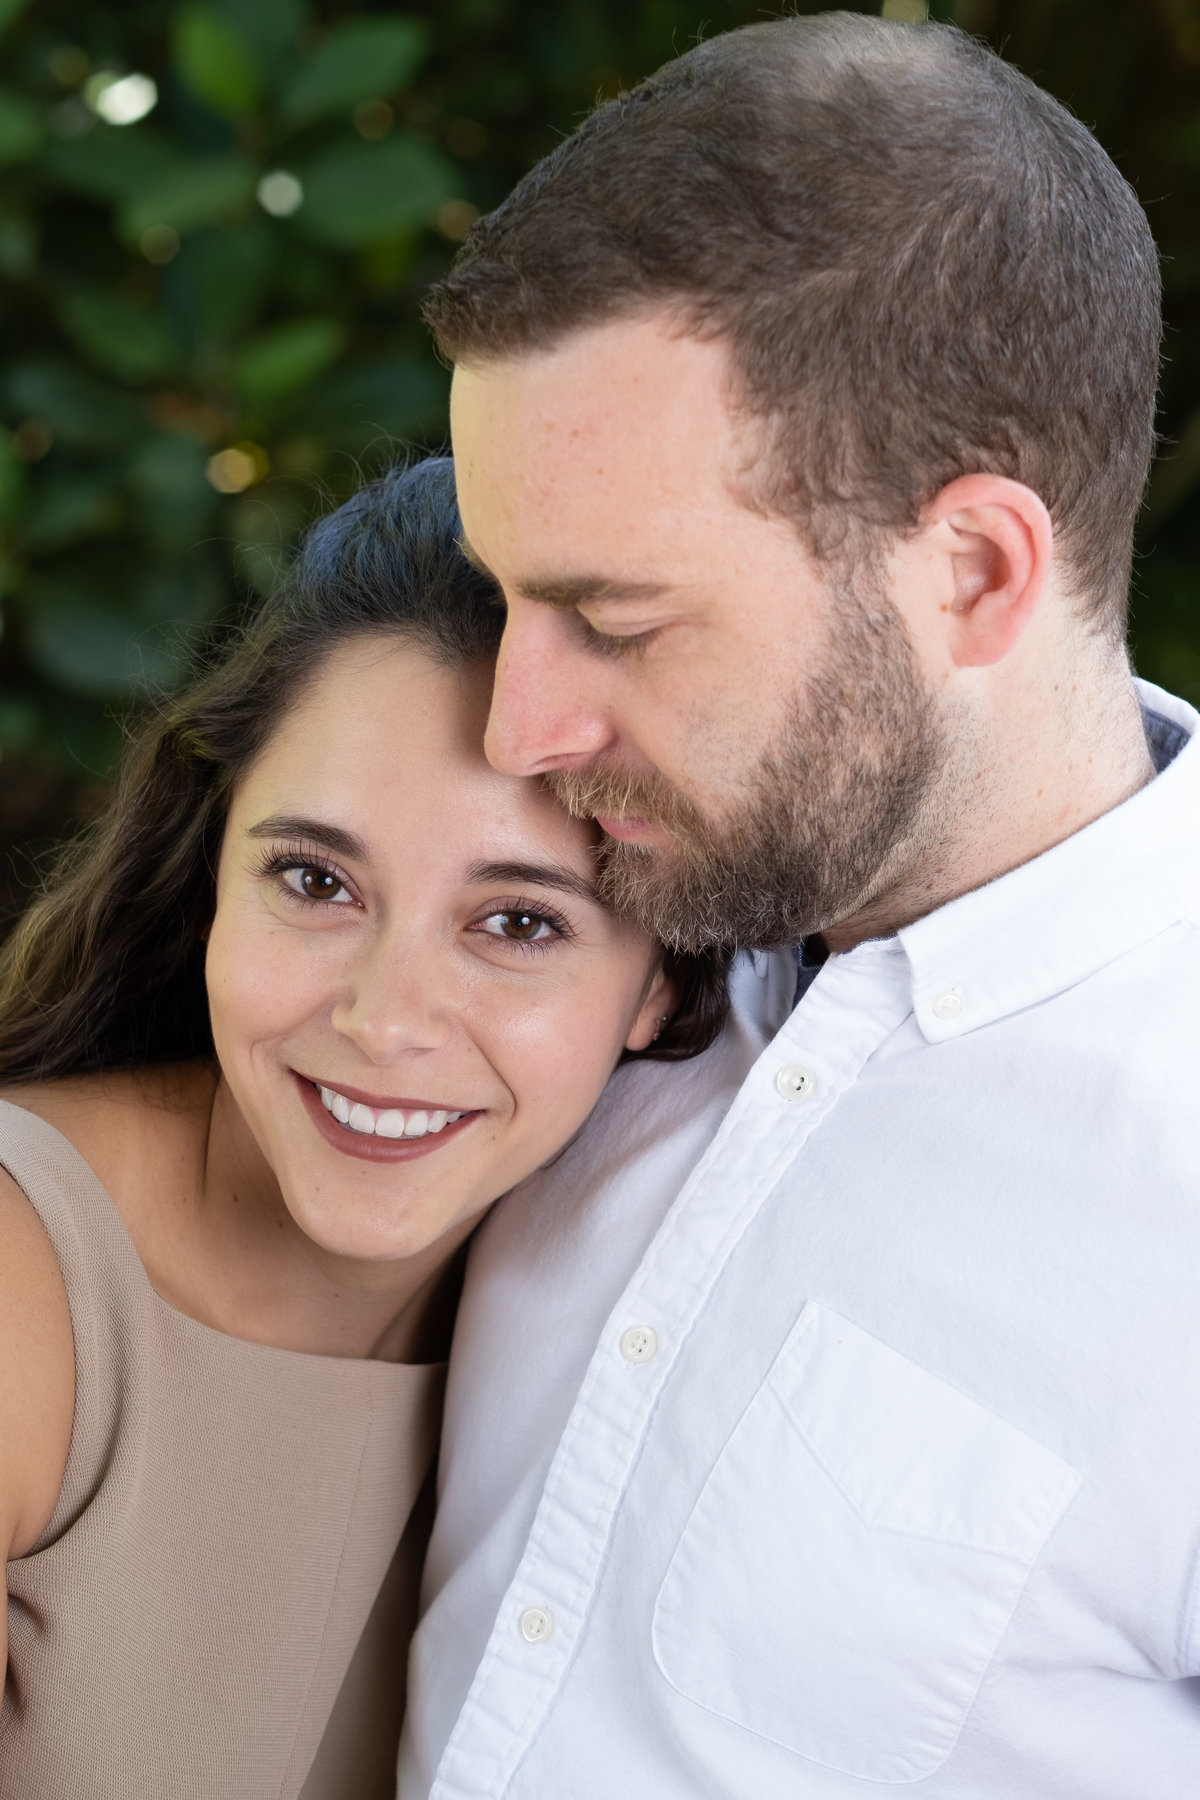 engagement-photographer-san-francisco-bay-area-camille-rogine-8103-cristina